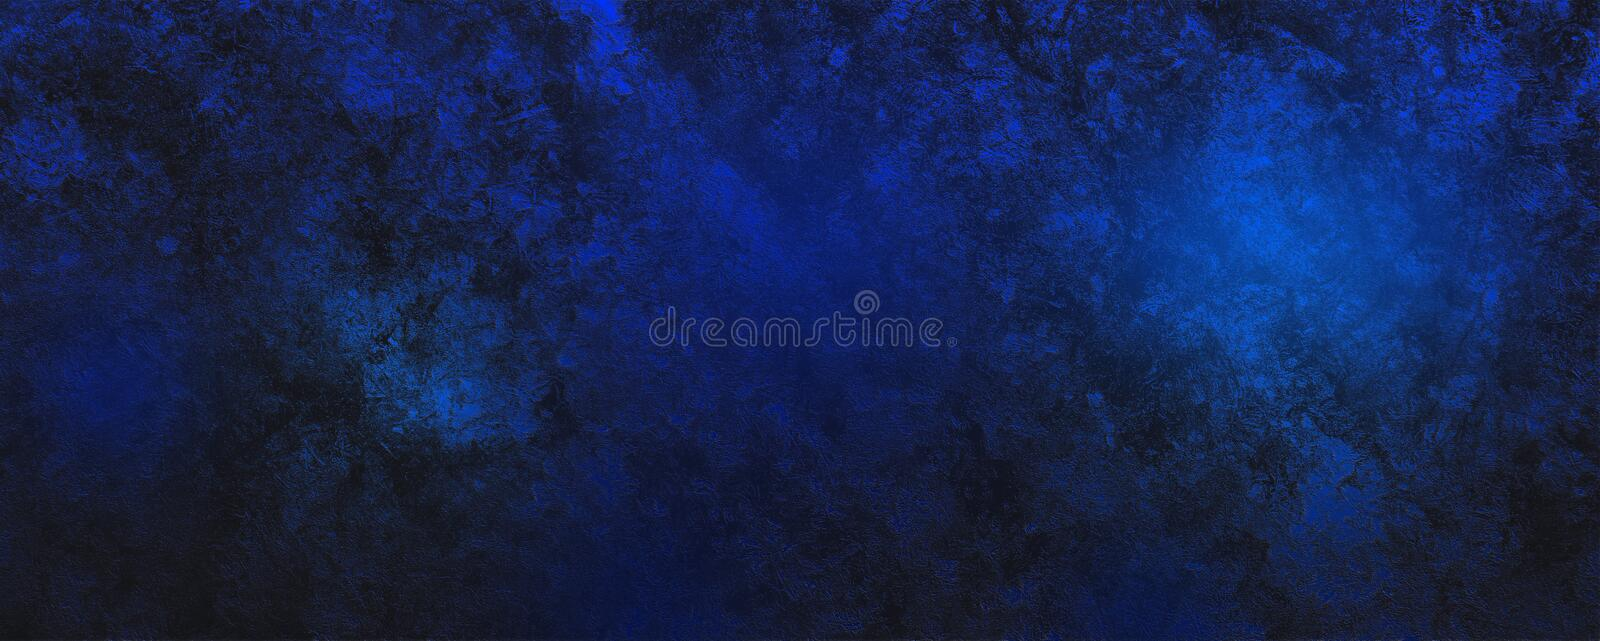 Deep blue and black abstract dreamlike fantasy background stock images